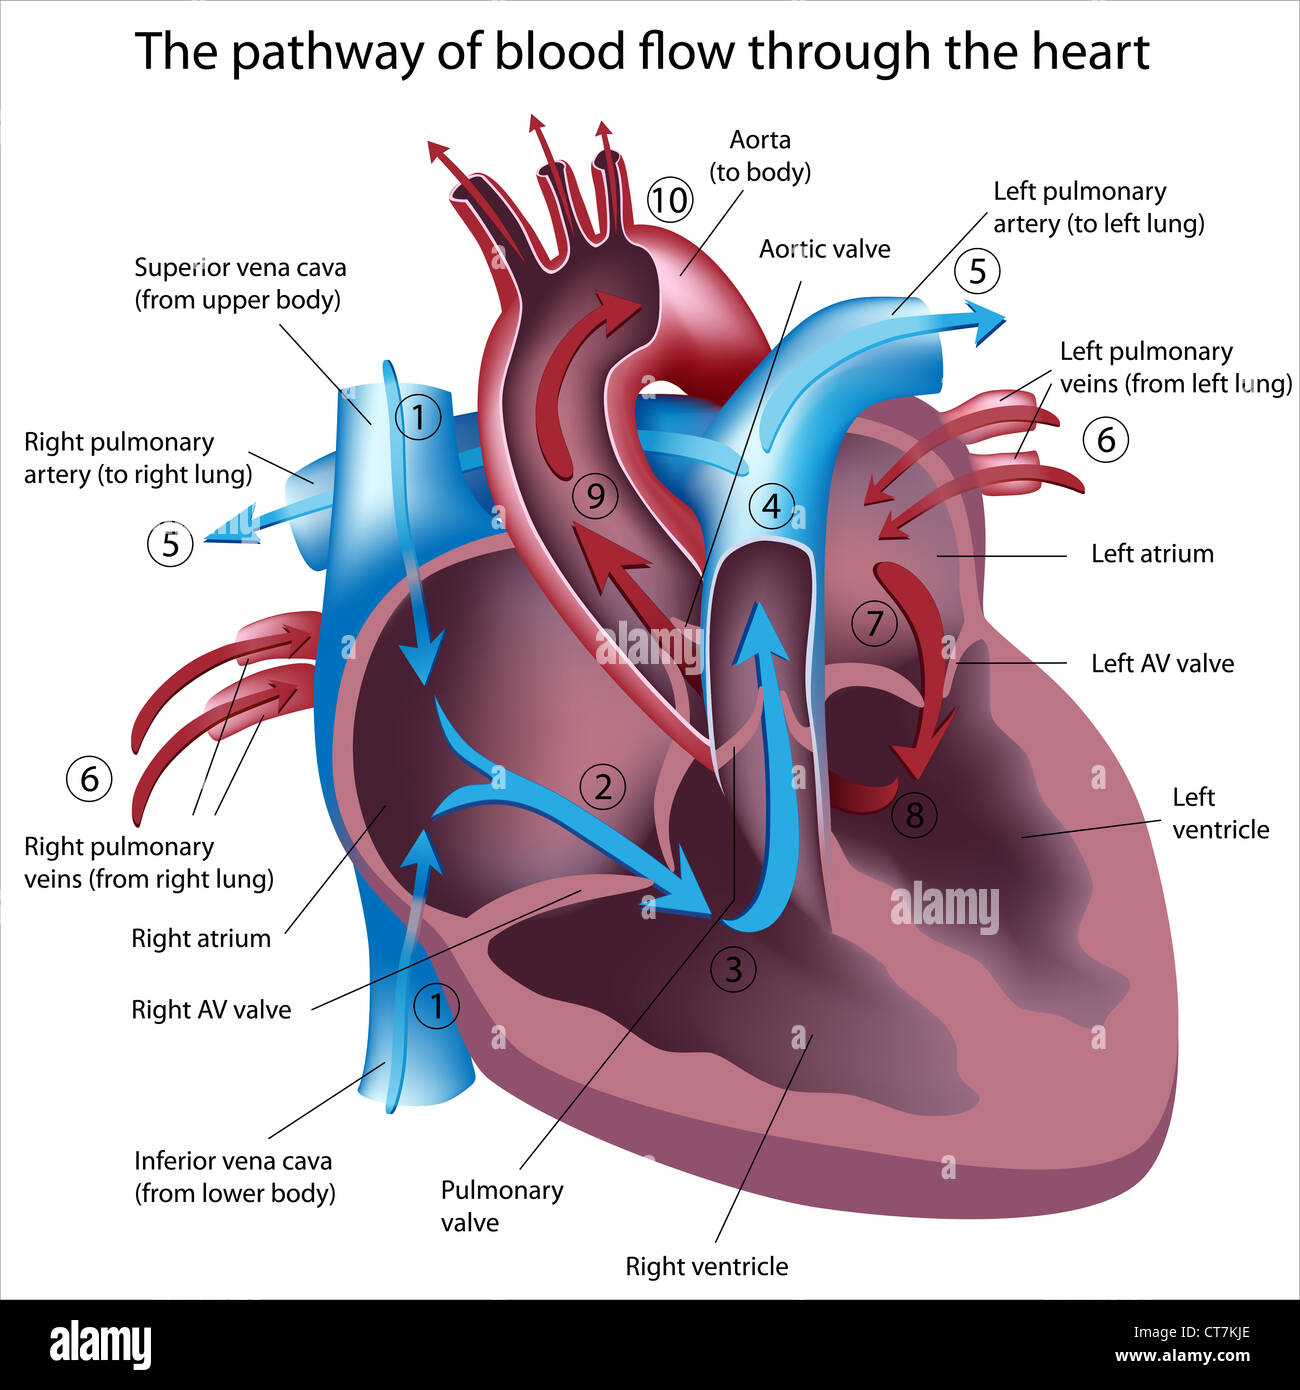 Pathway Of Blood Flow Through The Heart Stock Photo 49341558 Alamy